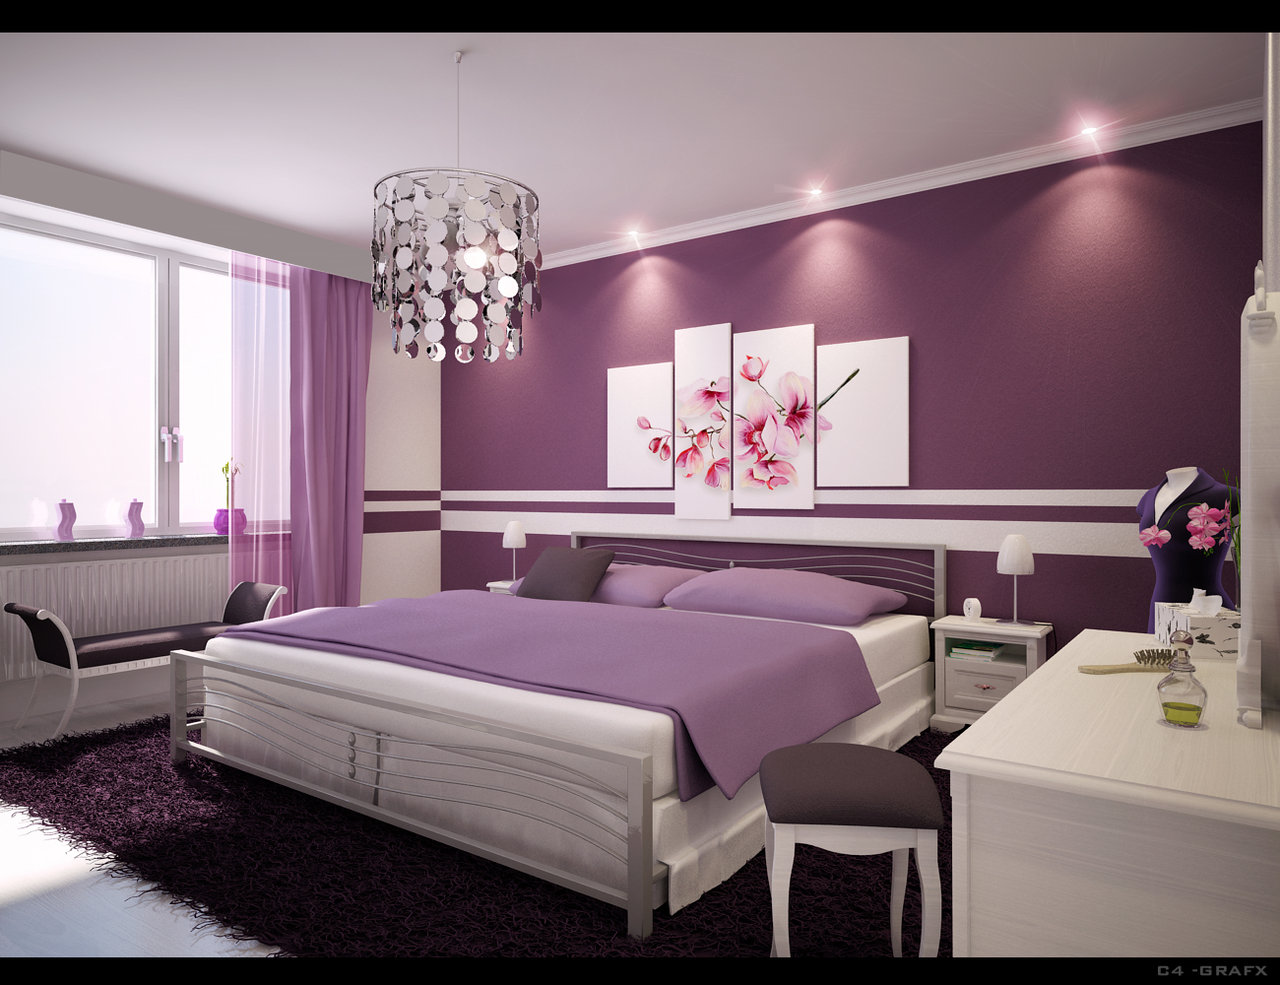 new home designs latest. home bedrooms decoration ideas.